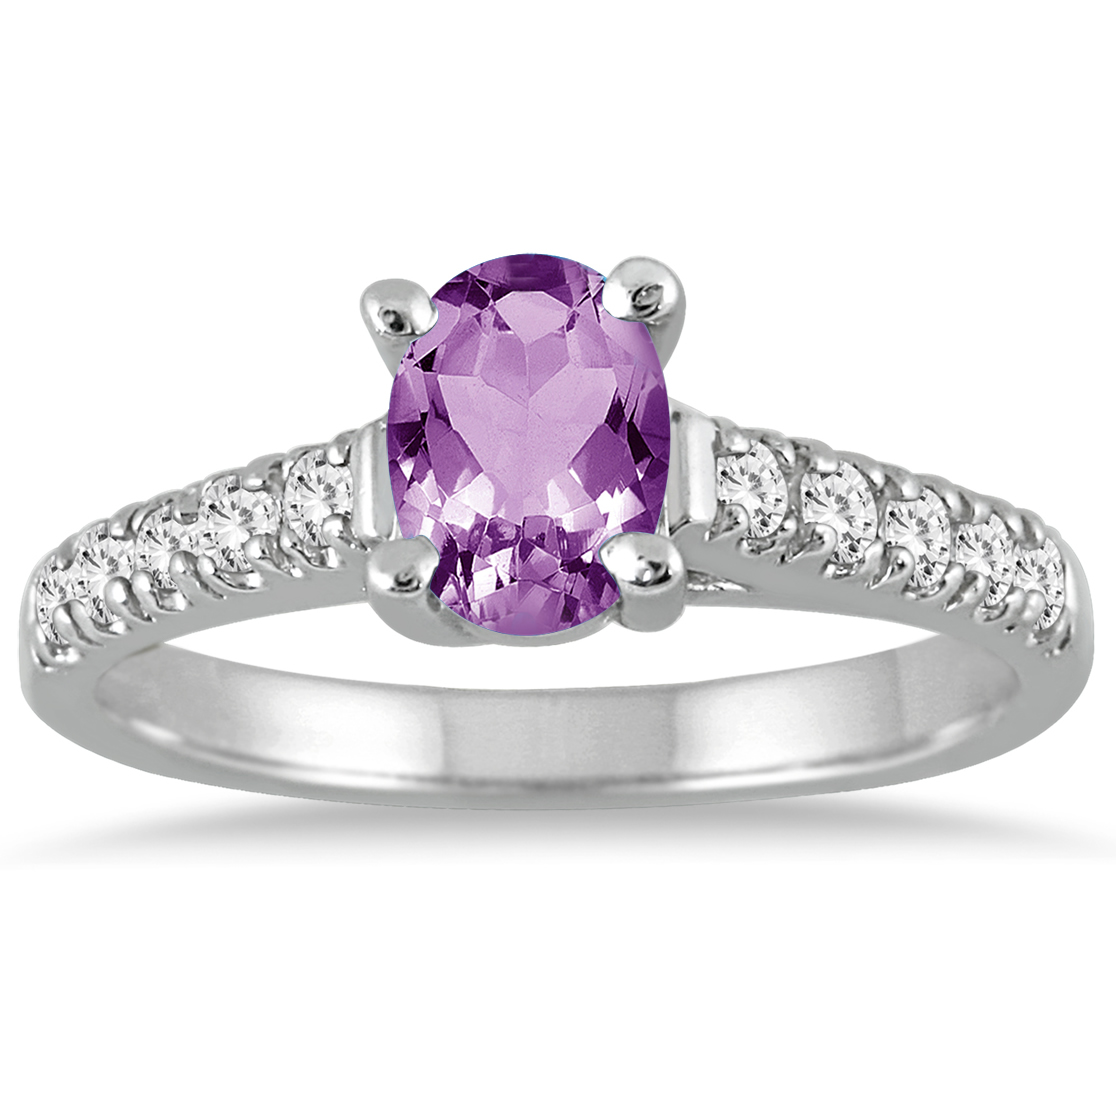 1 Carat Oval Amethyst and Diamond Ring in 14K White Gold